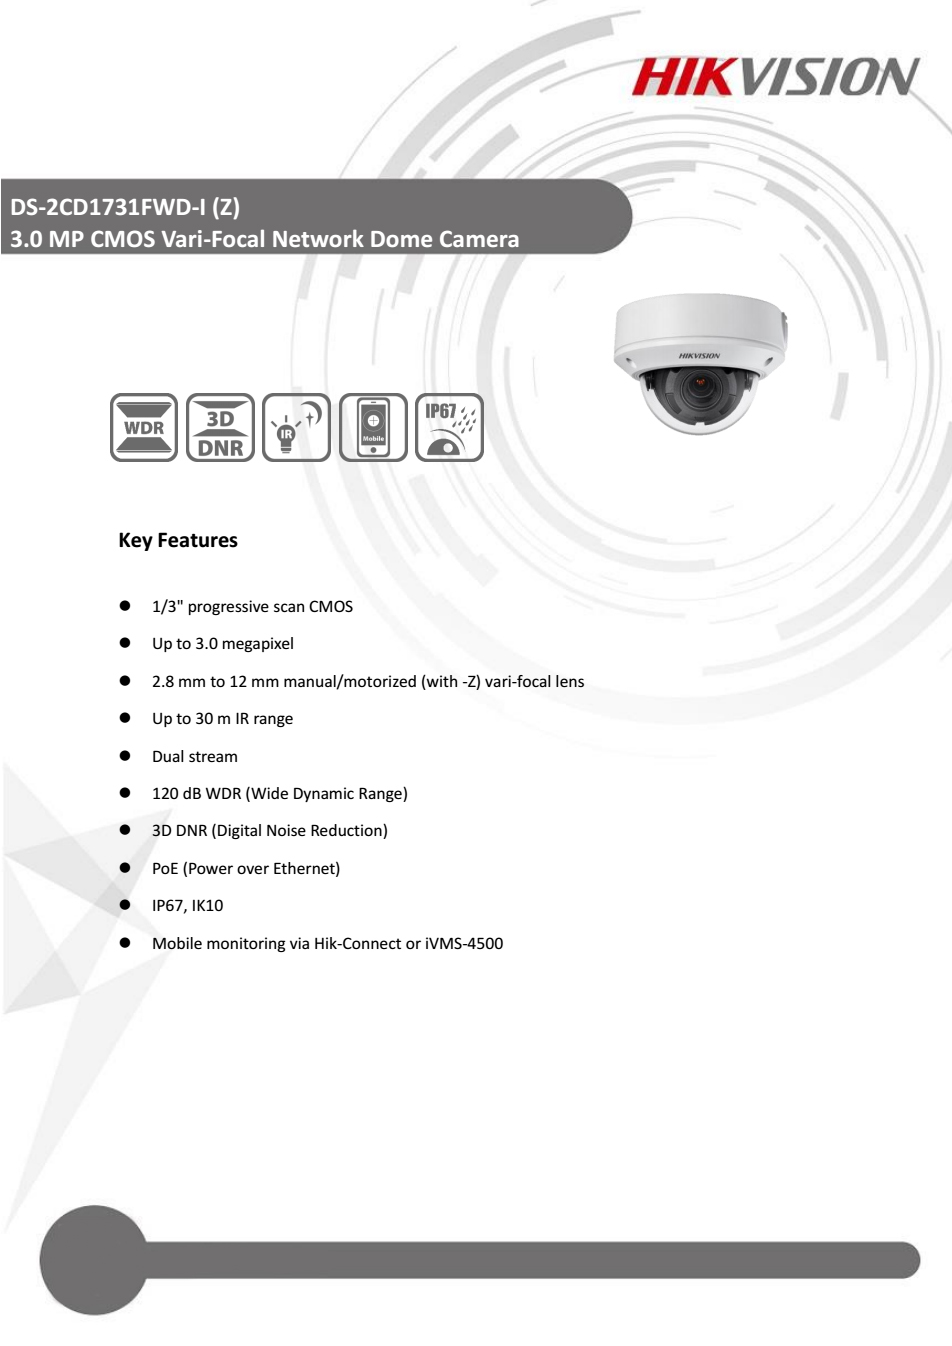 Hikvision DS-2CD1731FWD-IZ 3MP WDR Motorized VF lens Dome Network Camera